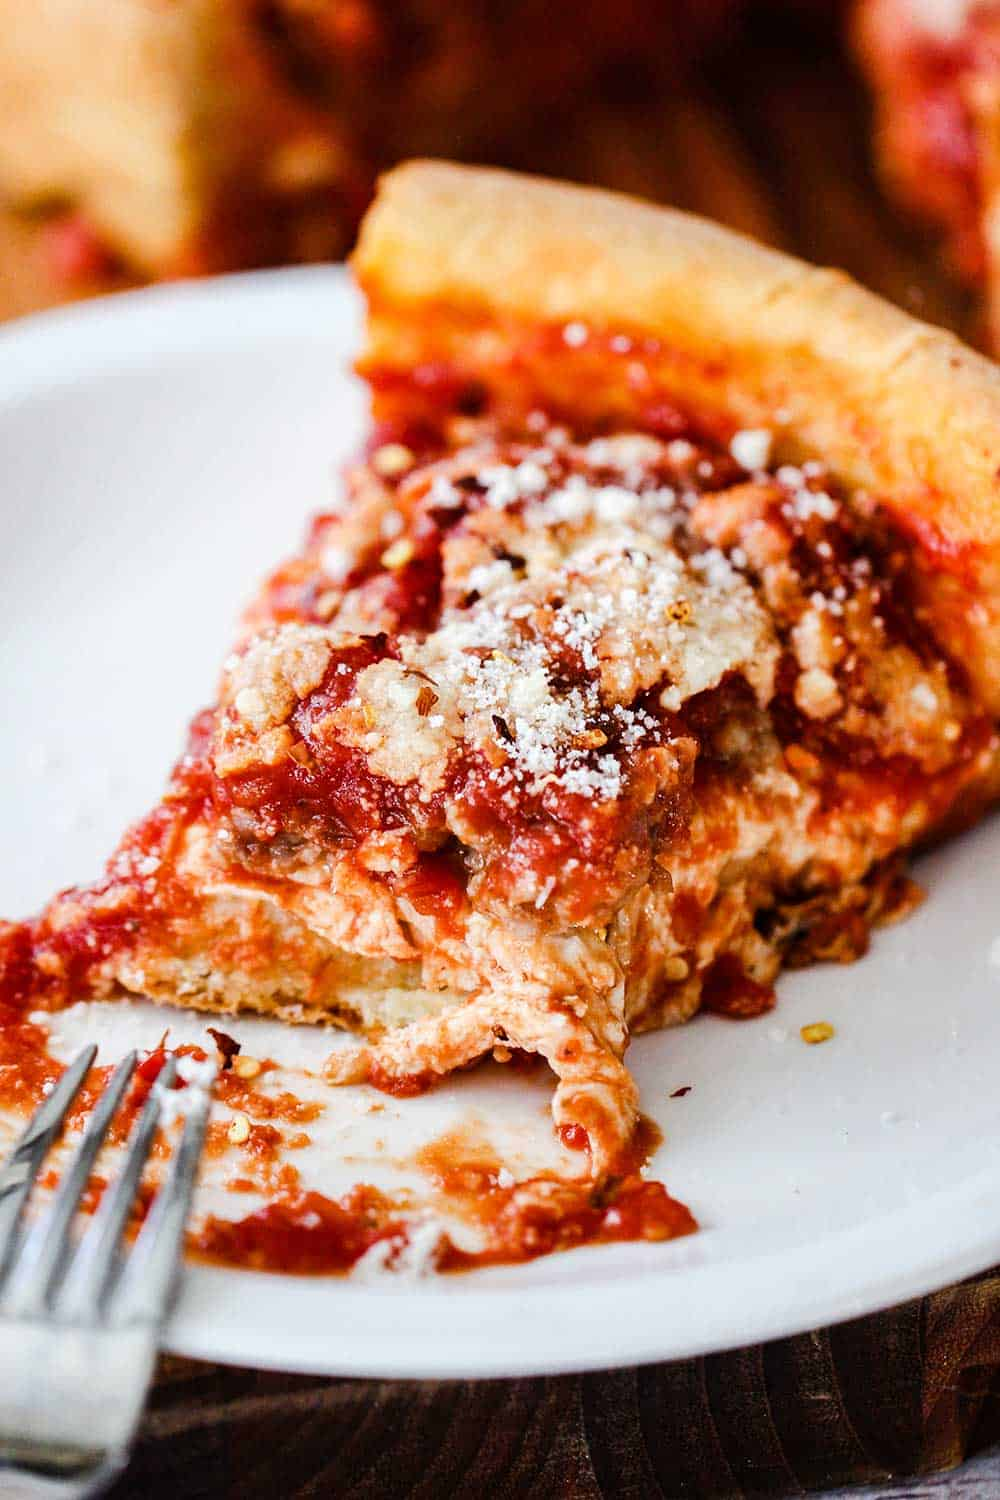 A slice of Chicago-style deep dish pizza on an individual plate with a bite taken out.